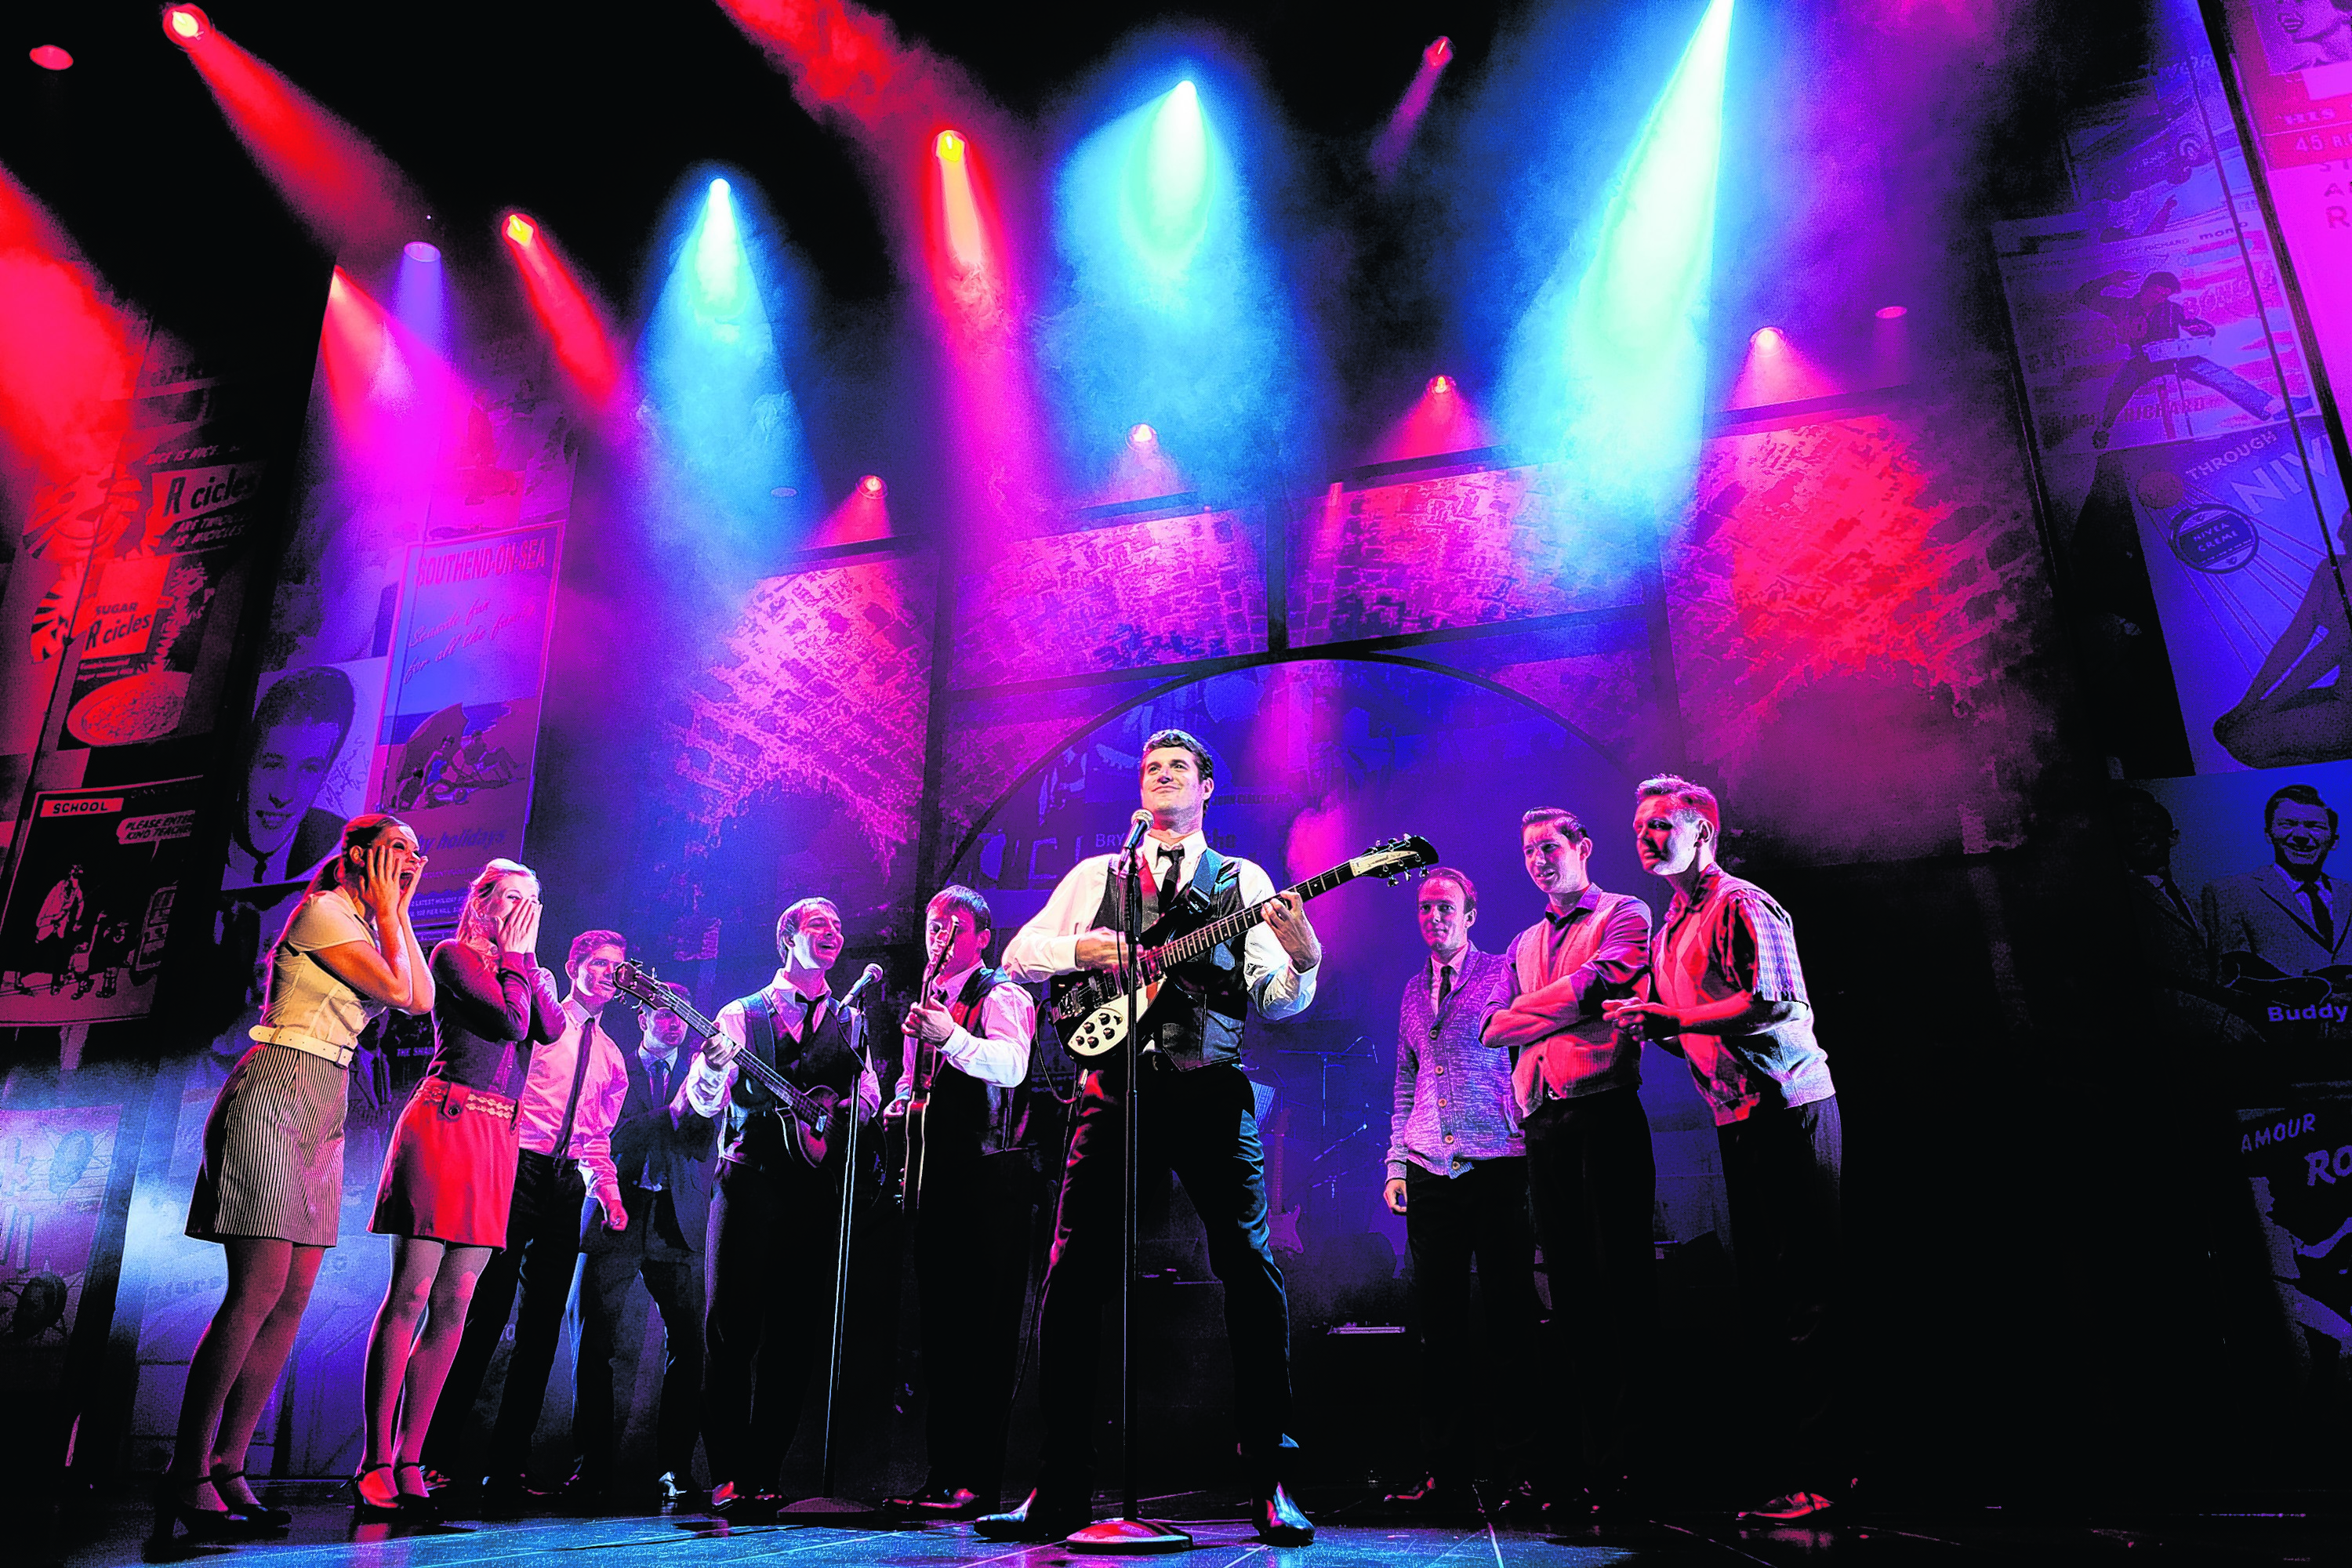 Alan Howell, centre, performing in Dreamboats and Miniskirts